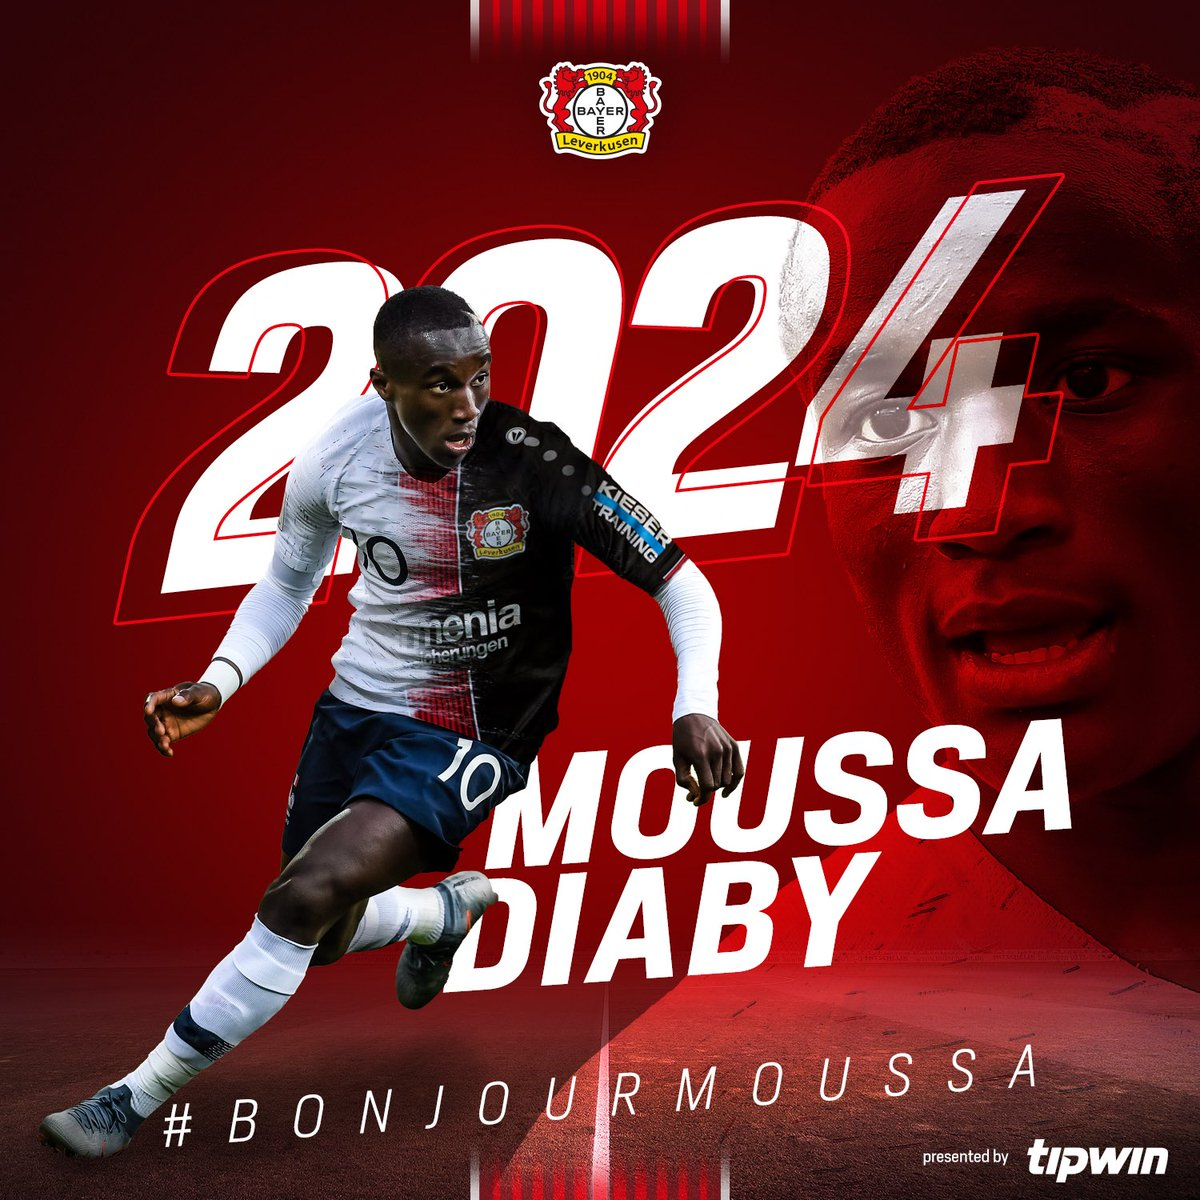 0f6c0ef7bd2 TRANSFER NEWS ouss Moussa Diaby joins the Werkself from PSG on a five-year  contract! He'll wear number 19! #BonjourMoussa